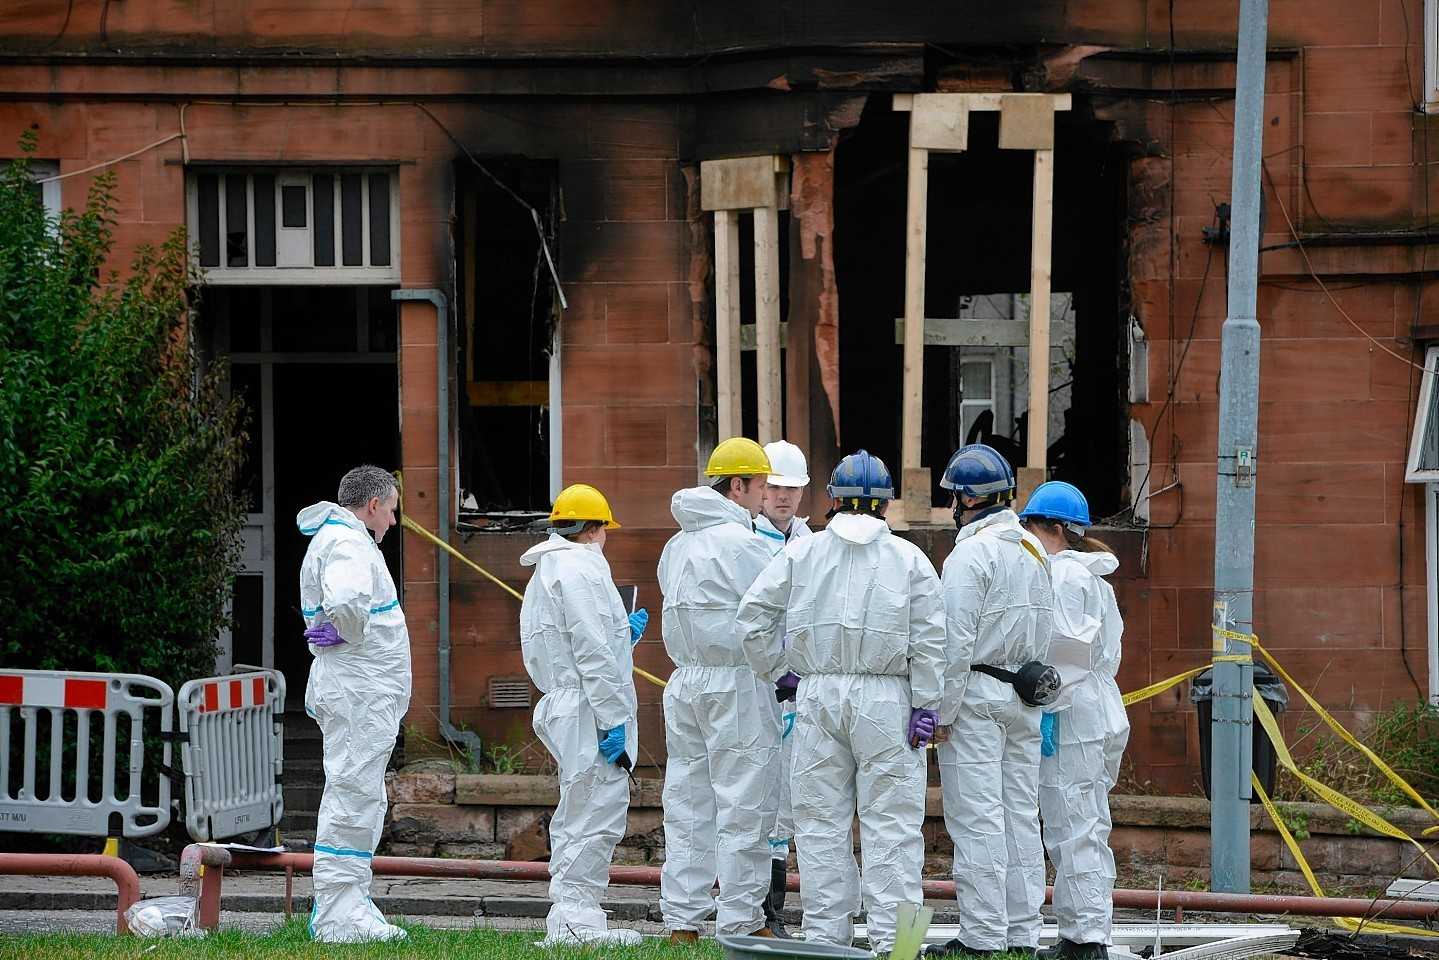 Forensic teams inspects the scene of the blaze